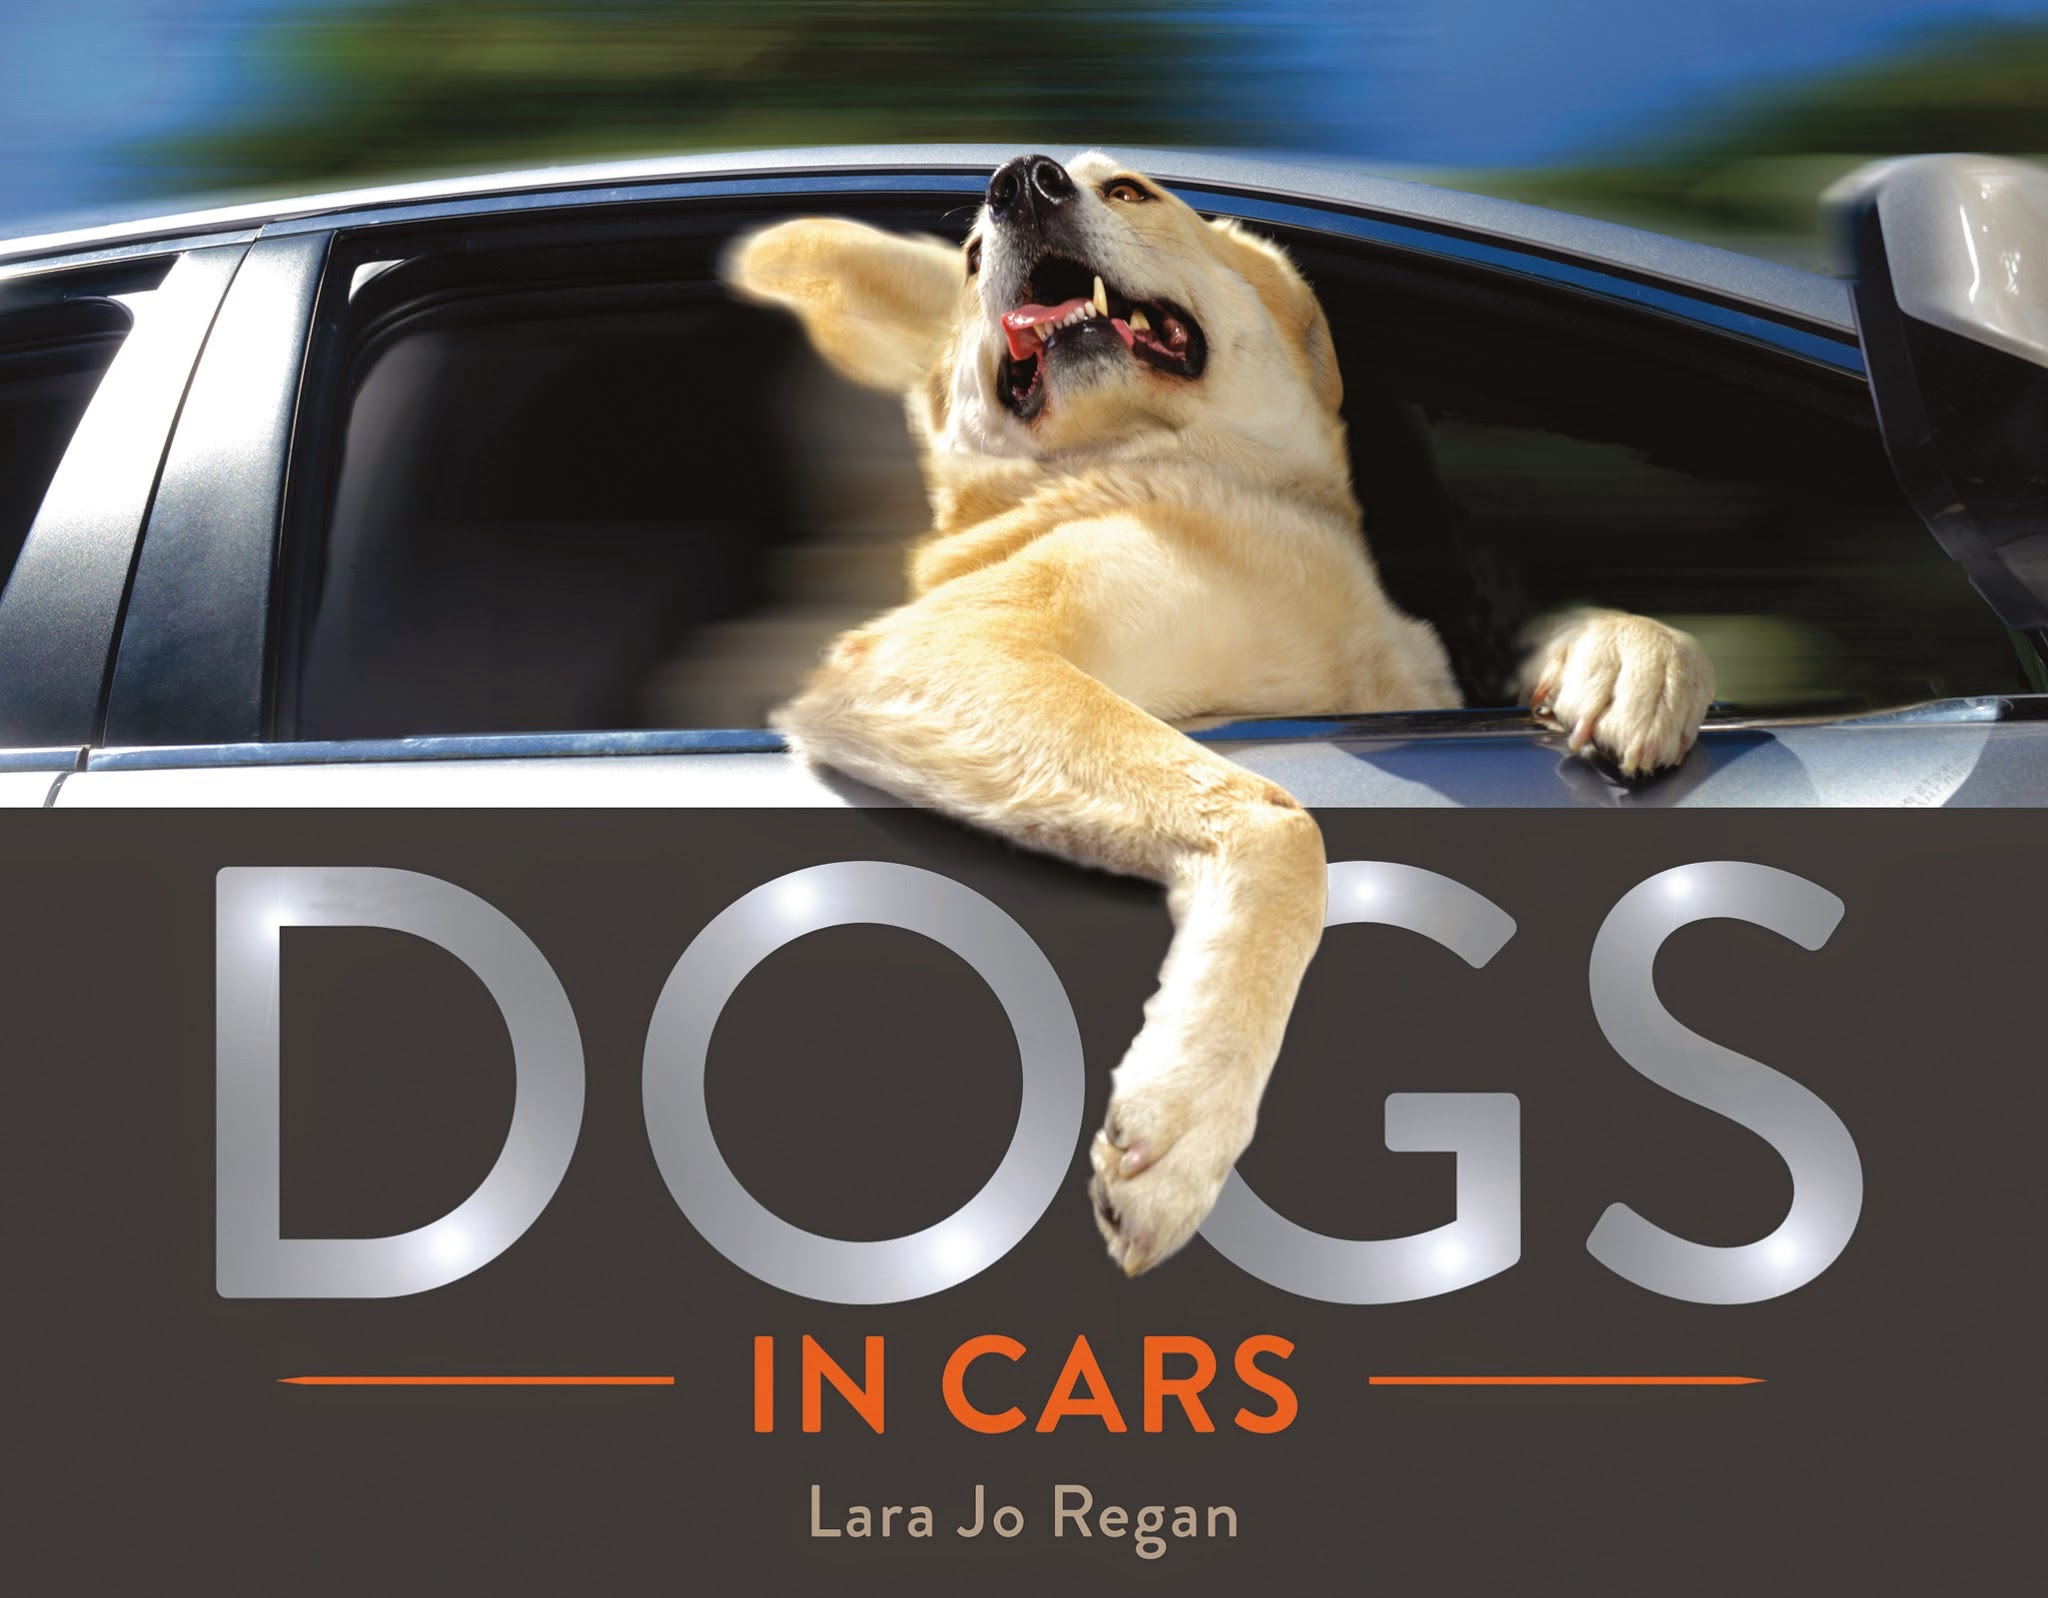 Almost Human: Pets and Animals Books for Fall 2014